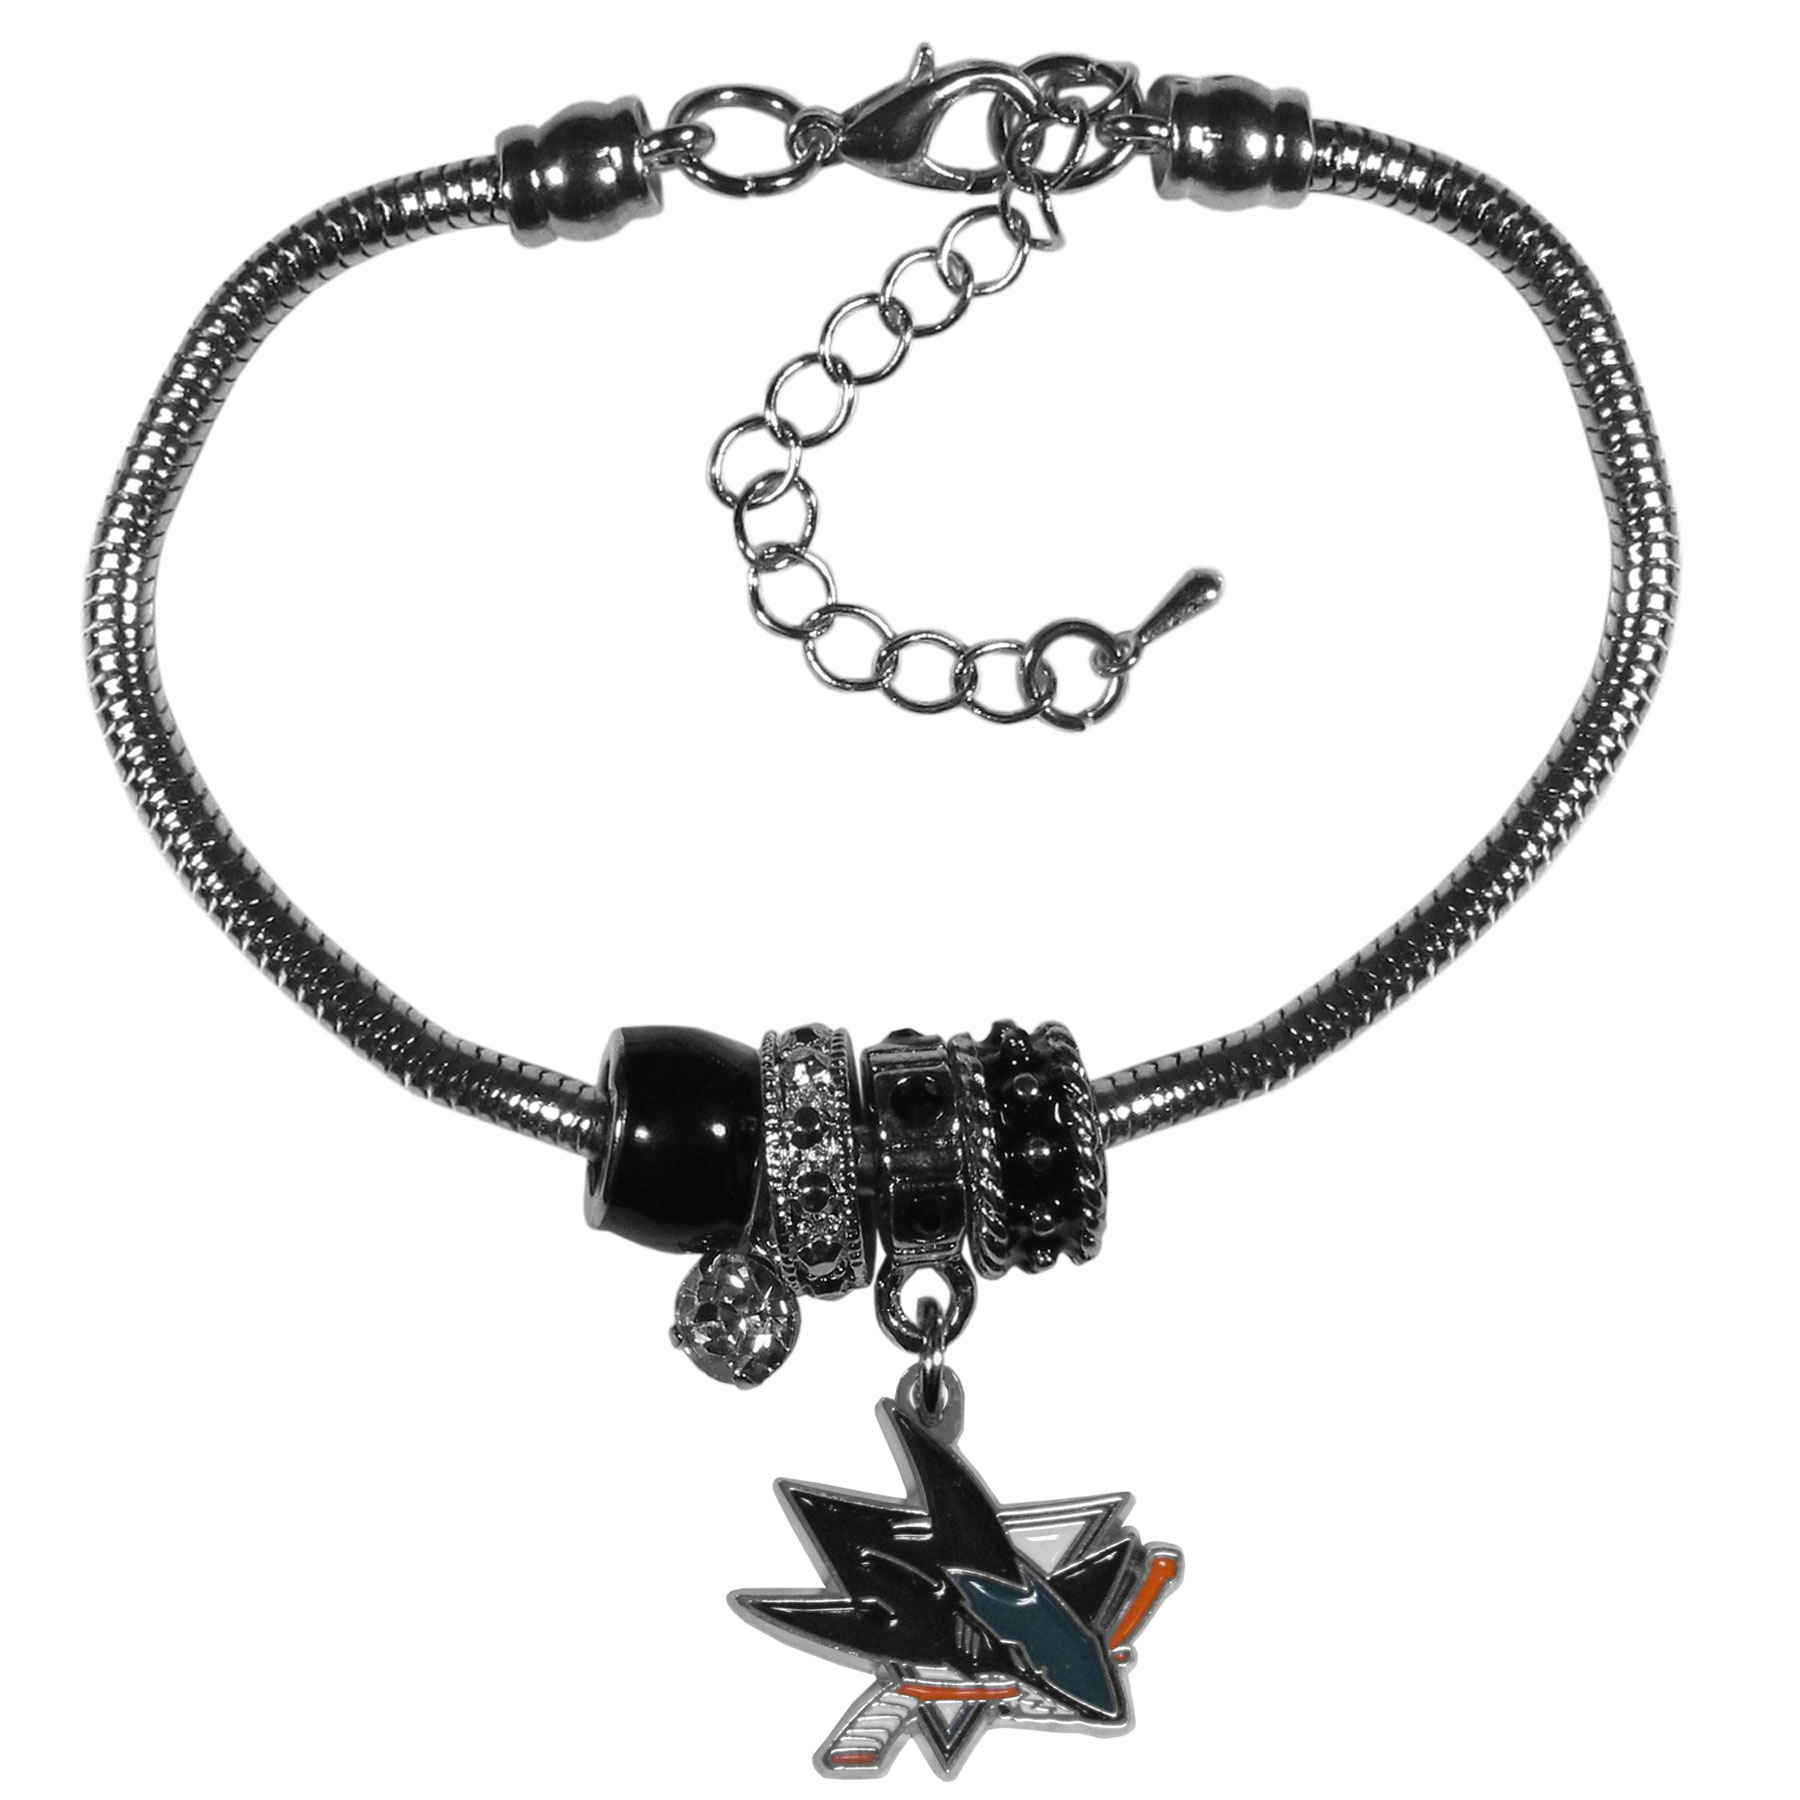 San Jose Sharks® Euro Bead Bracelet - We have combined the wildly popular Euro style beads with your favorite team to create our  San Jose Sharks® bead bracelet. The 7.5 inch snake chain with 2 inch extender features 4 Euro beads with enameled team colors and rhinestone accents with a high polish, nickel free charm and rhinestone charm. Perfect way to show off your team pride.